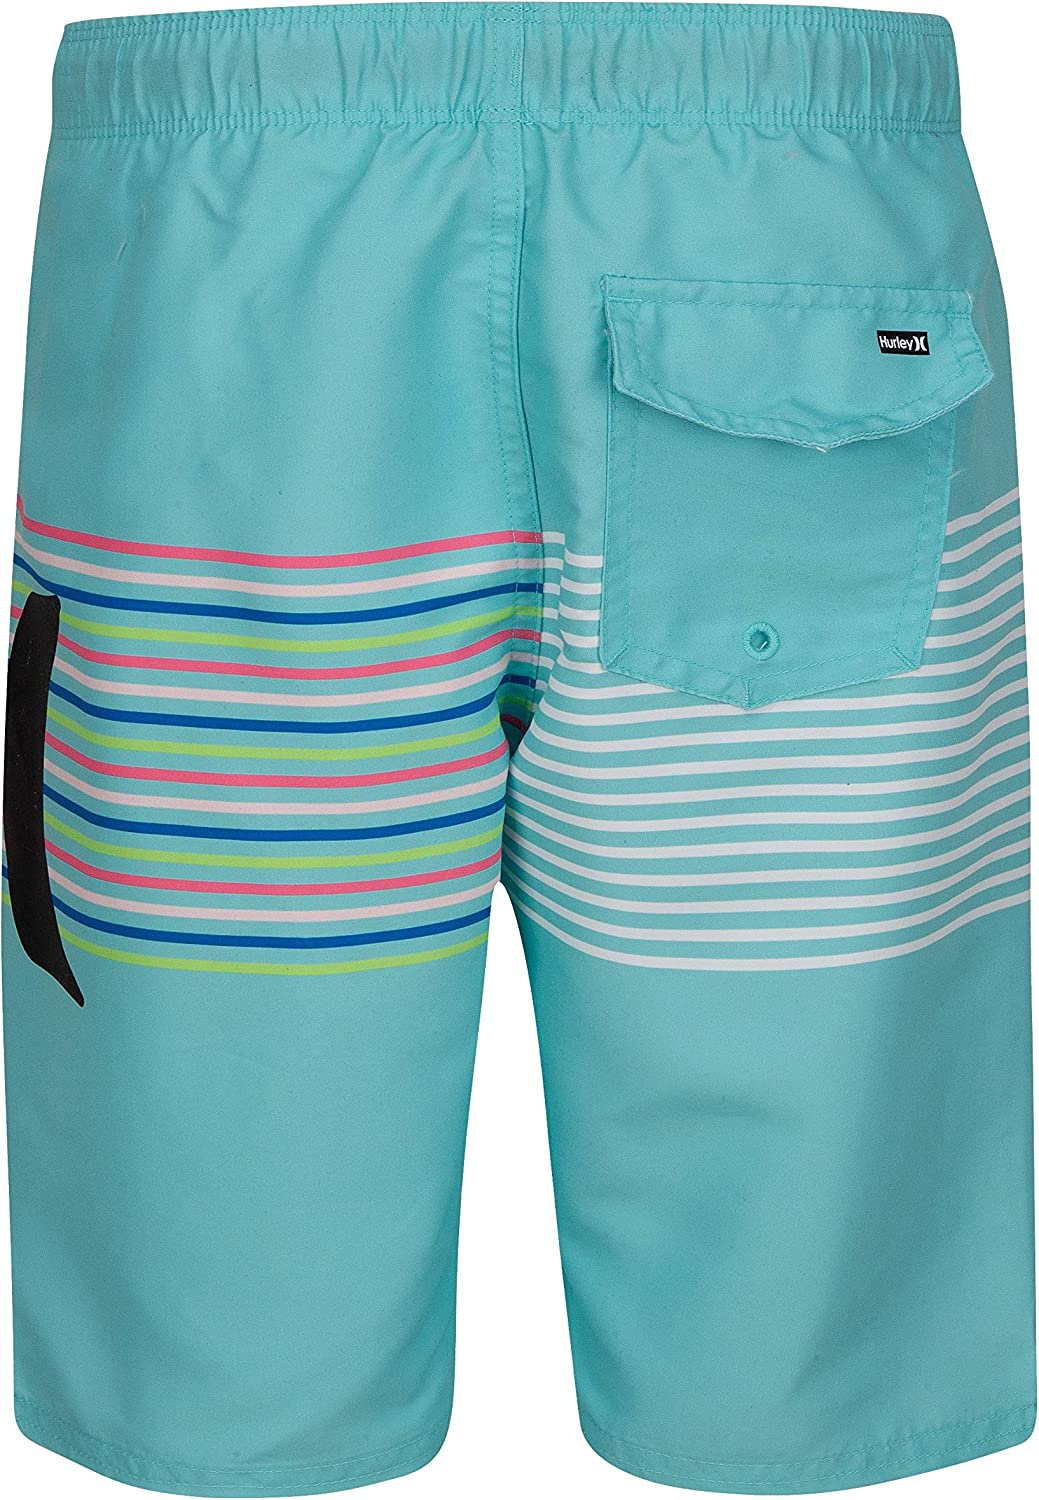 Hurley Boys Classic Board Shorts Fire Pink 2T